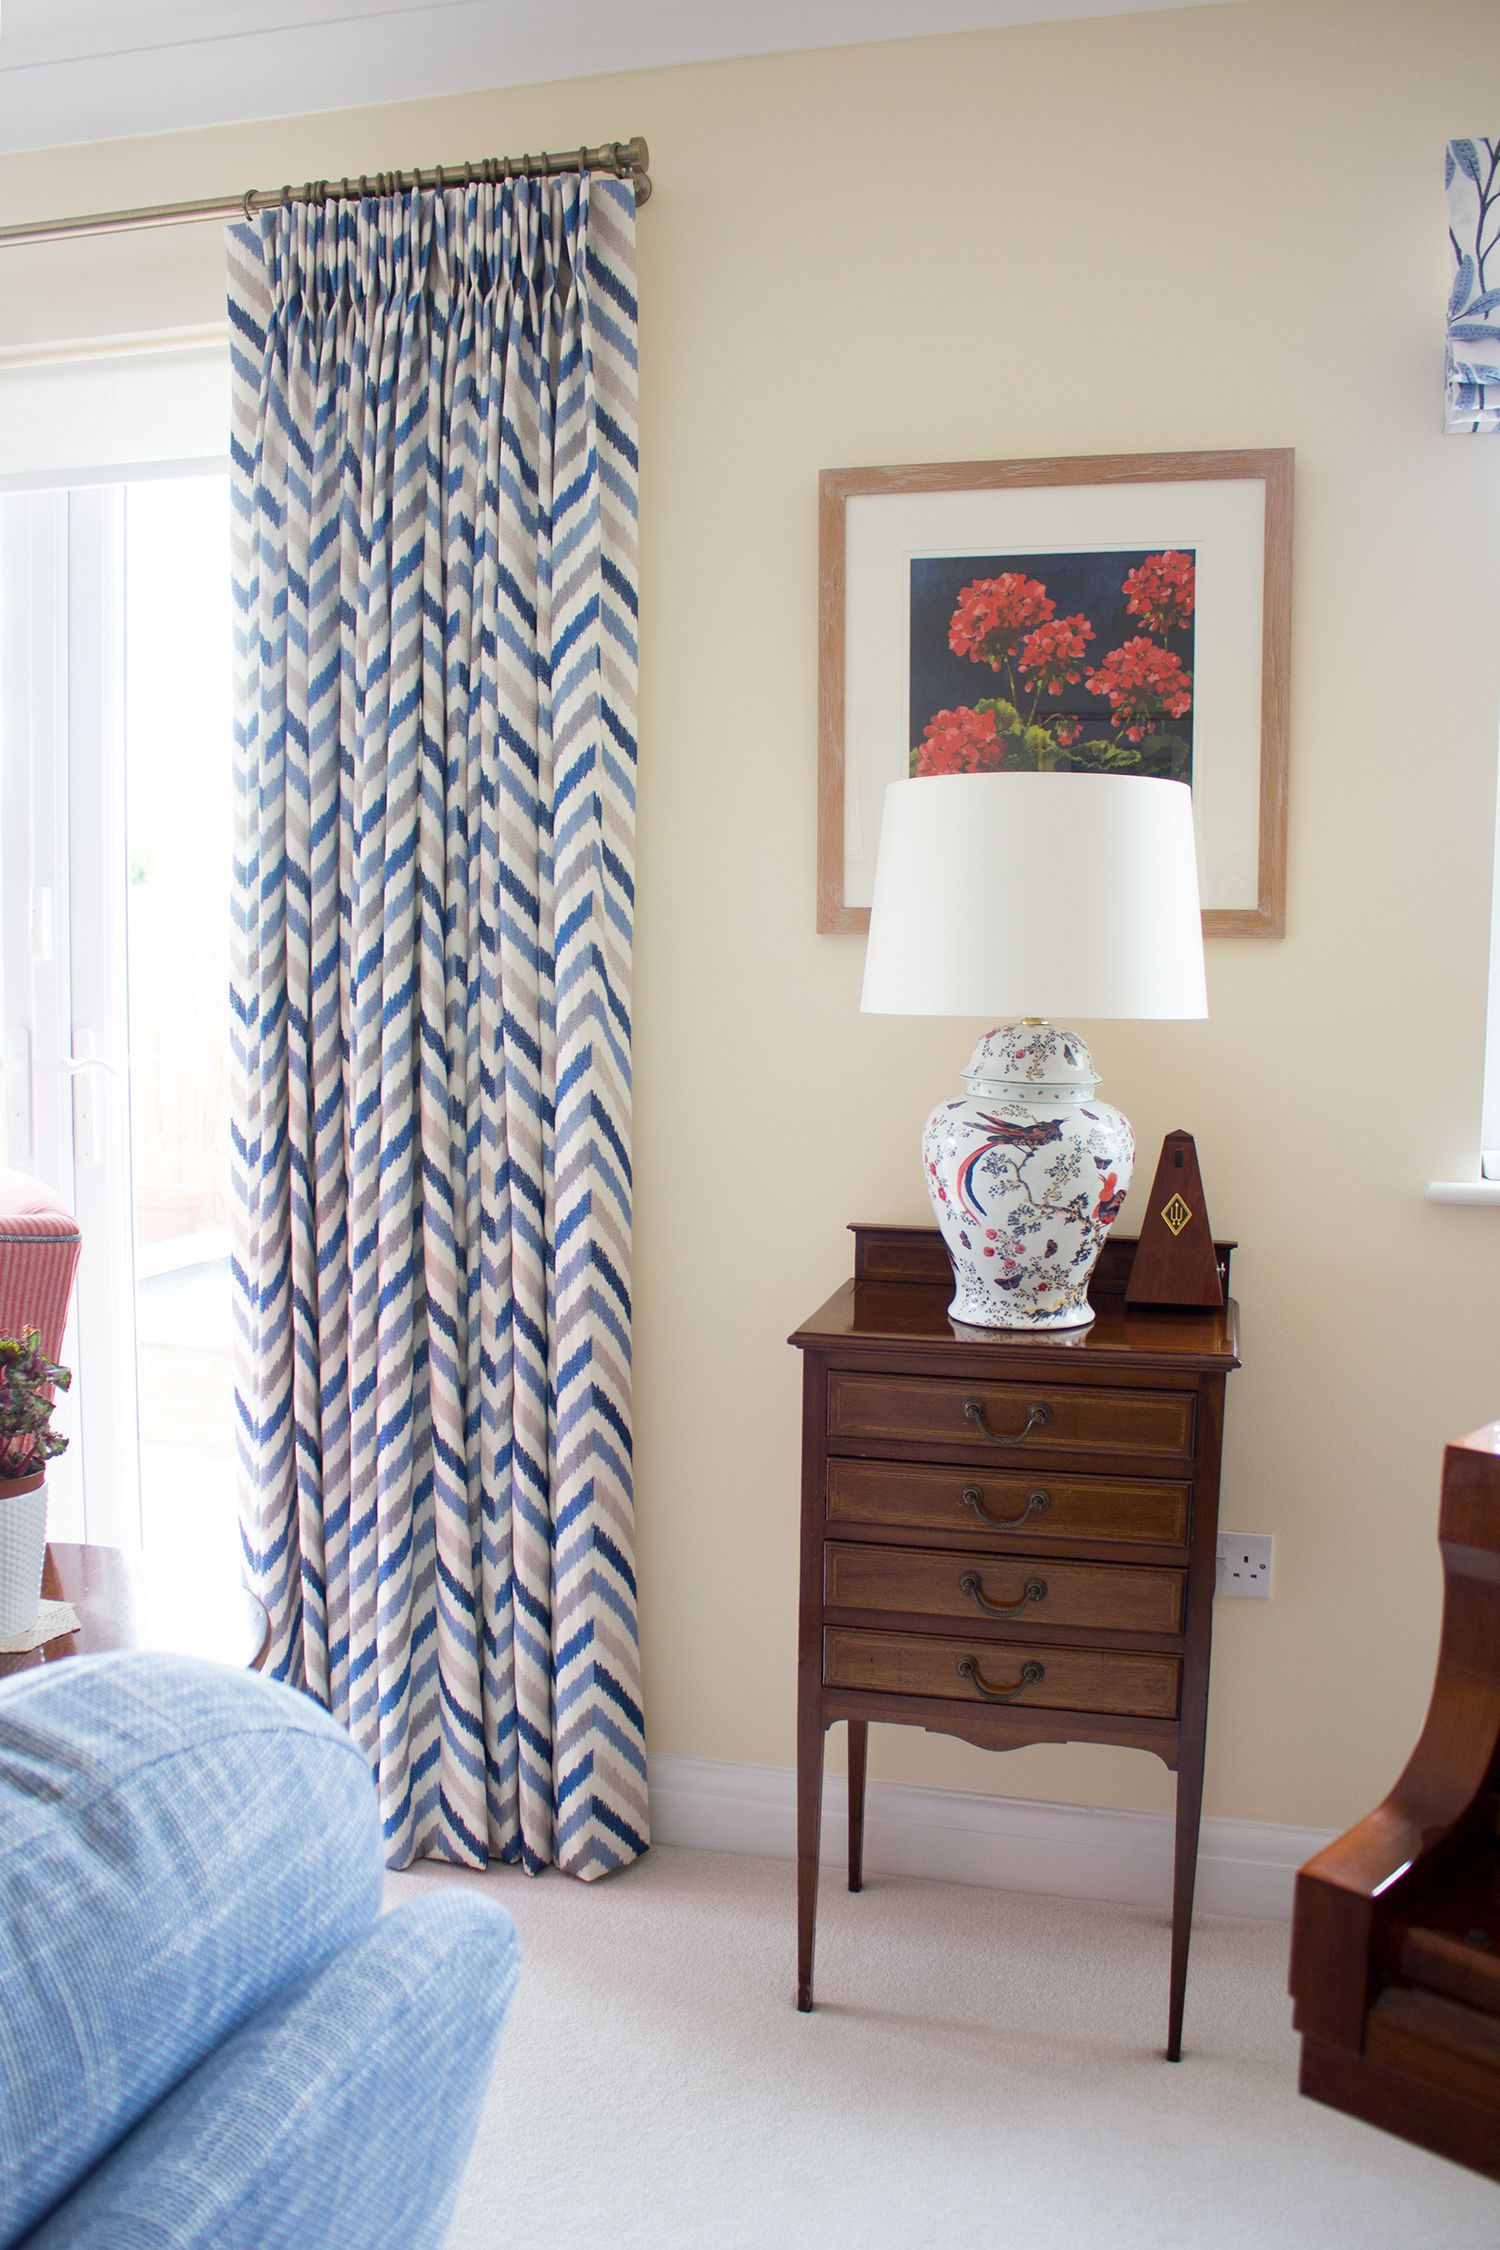 A photo showing one of the new curtains with an antique side table and new hand painted lamp.